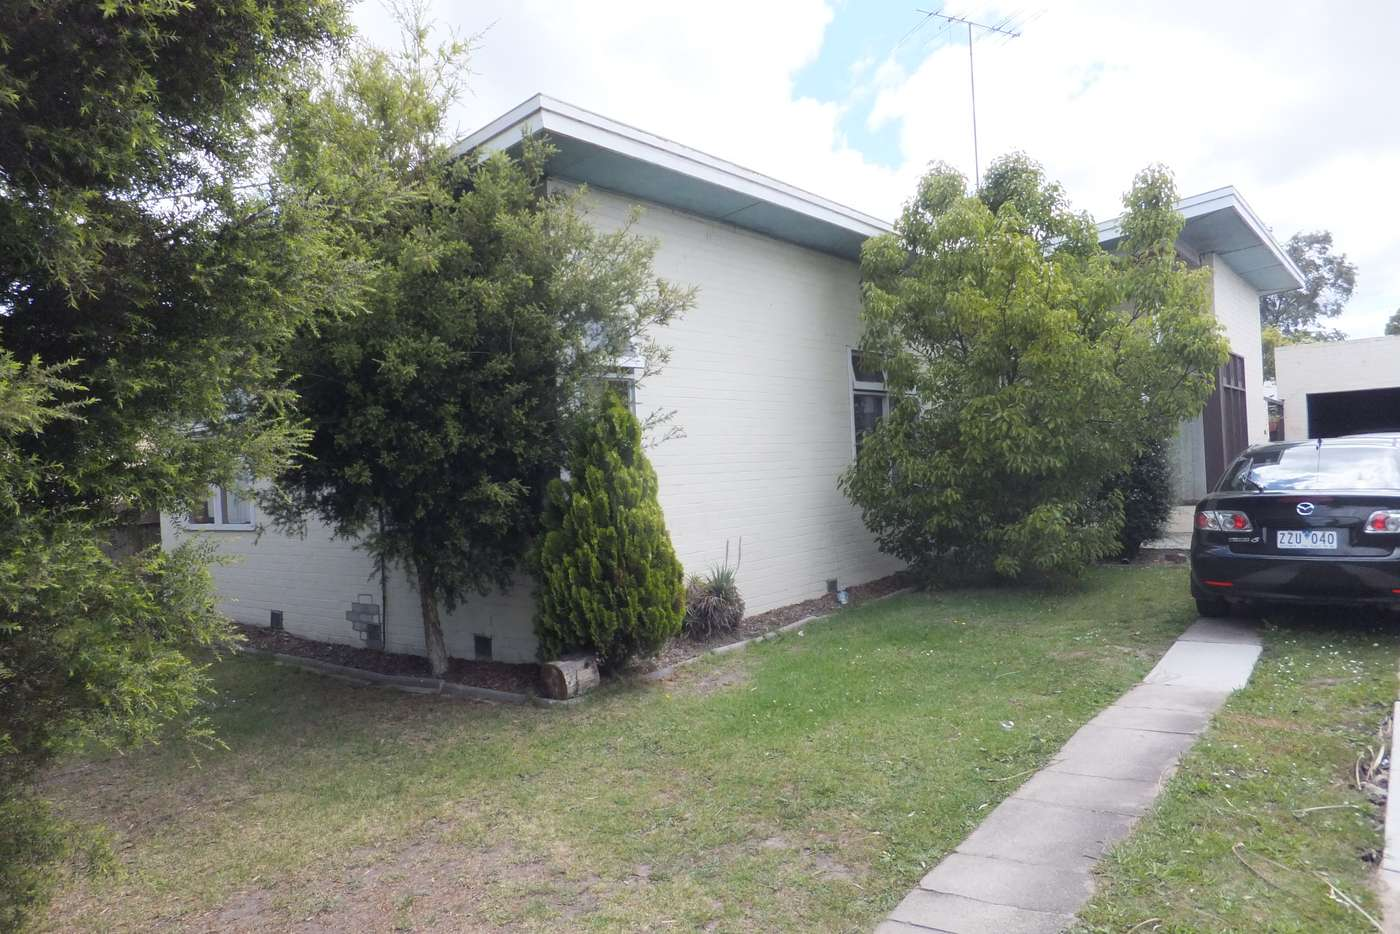 Main view of Homely house listing, 15 Hopetoun Avenue, Morwell VIC 3840